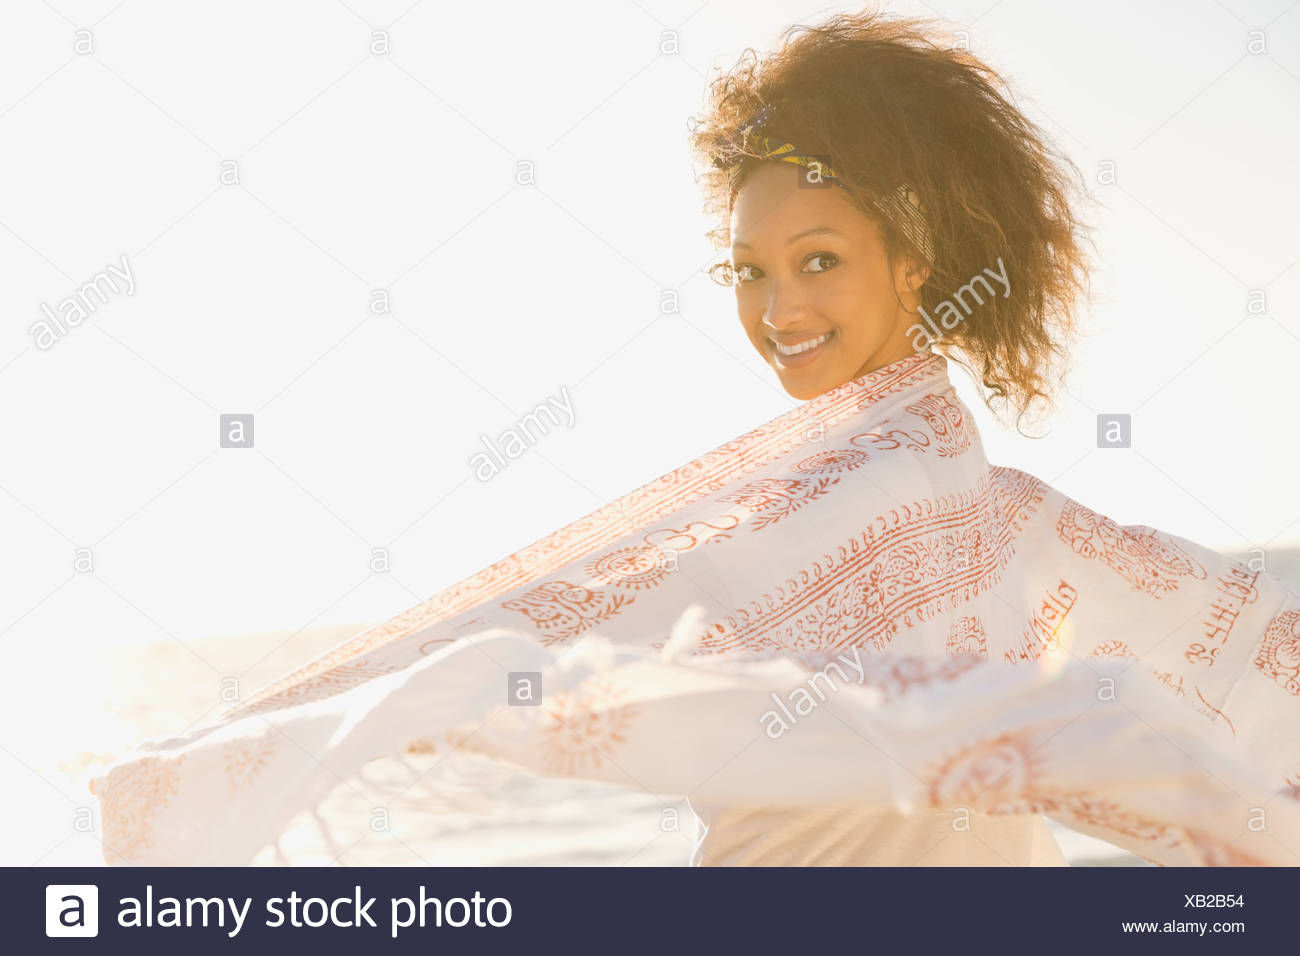 Woman with shawl on beach - Stock Image